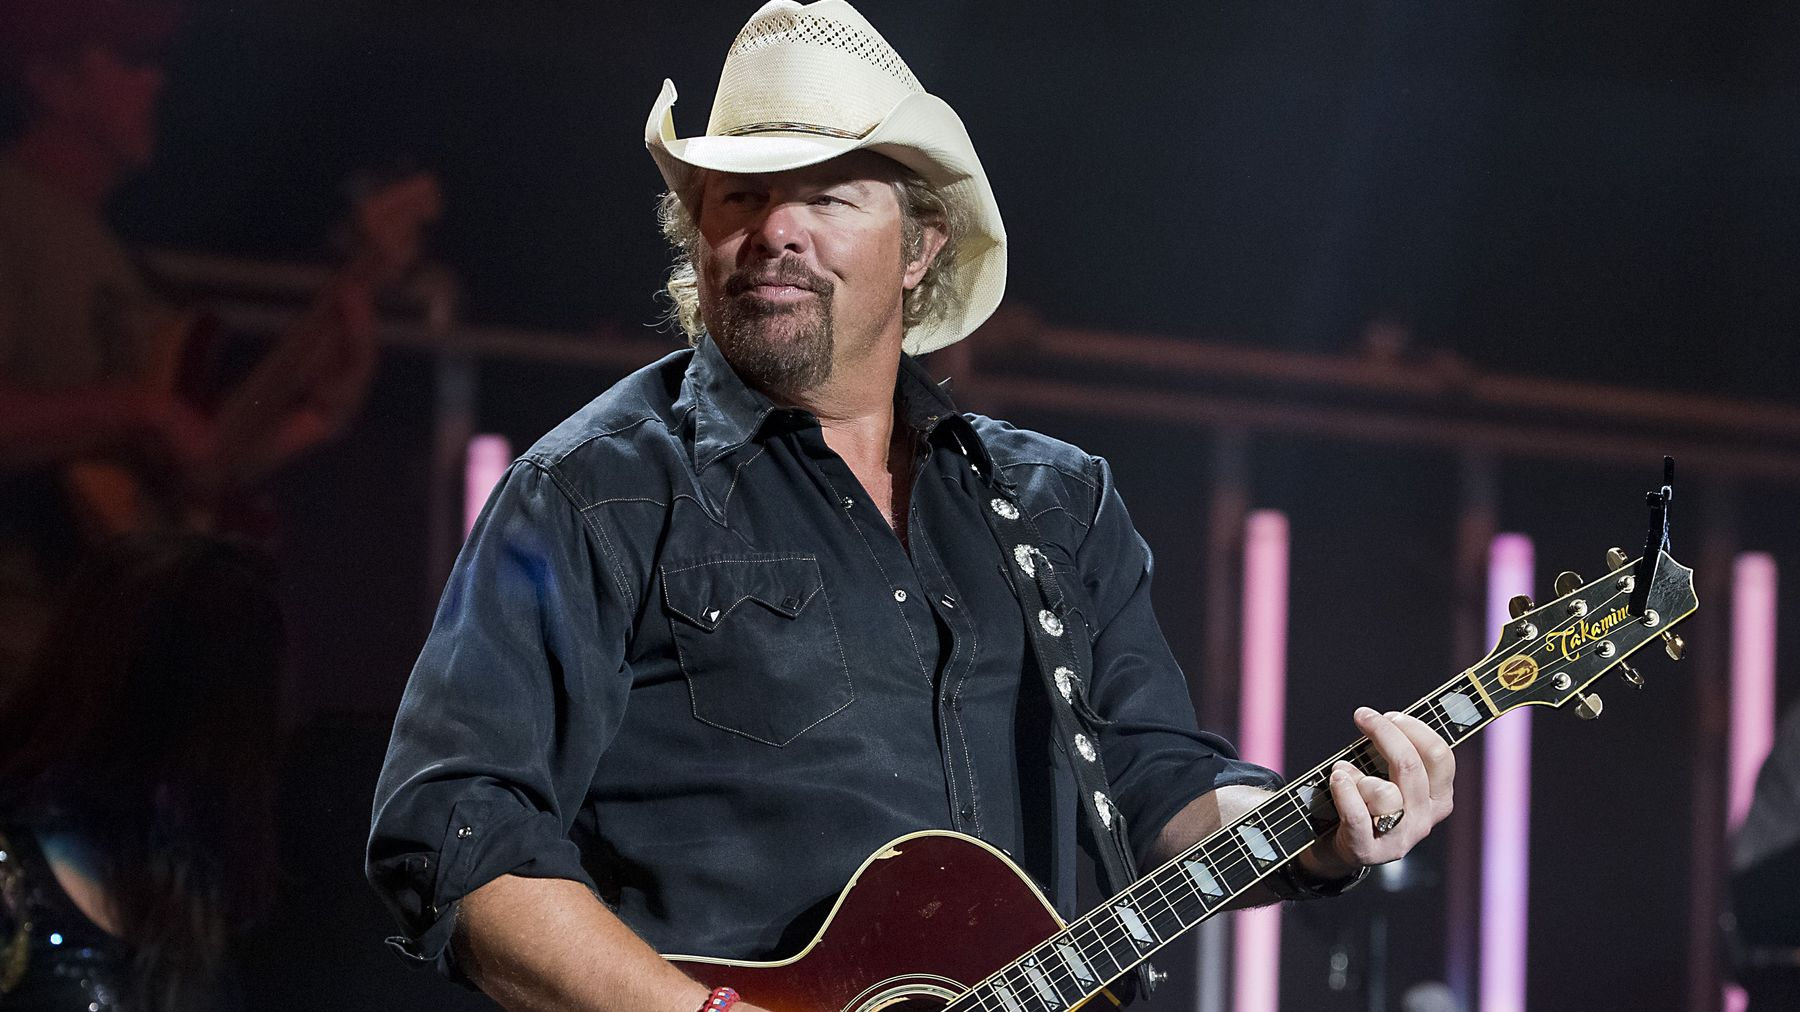 Toby Keith Plots That's Country Bro! Tour - Basin Radio